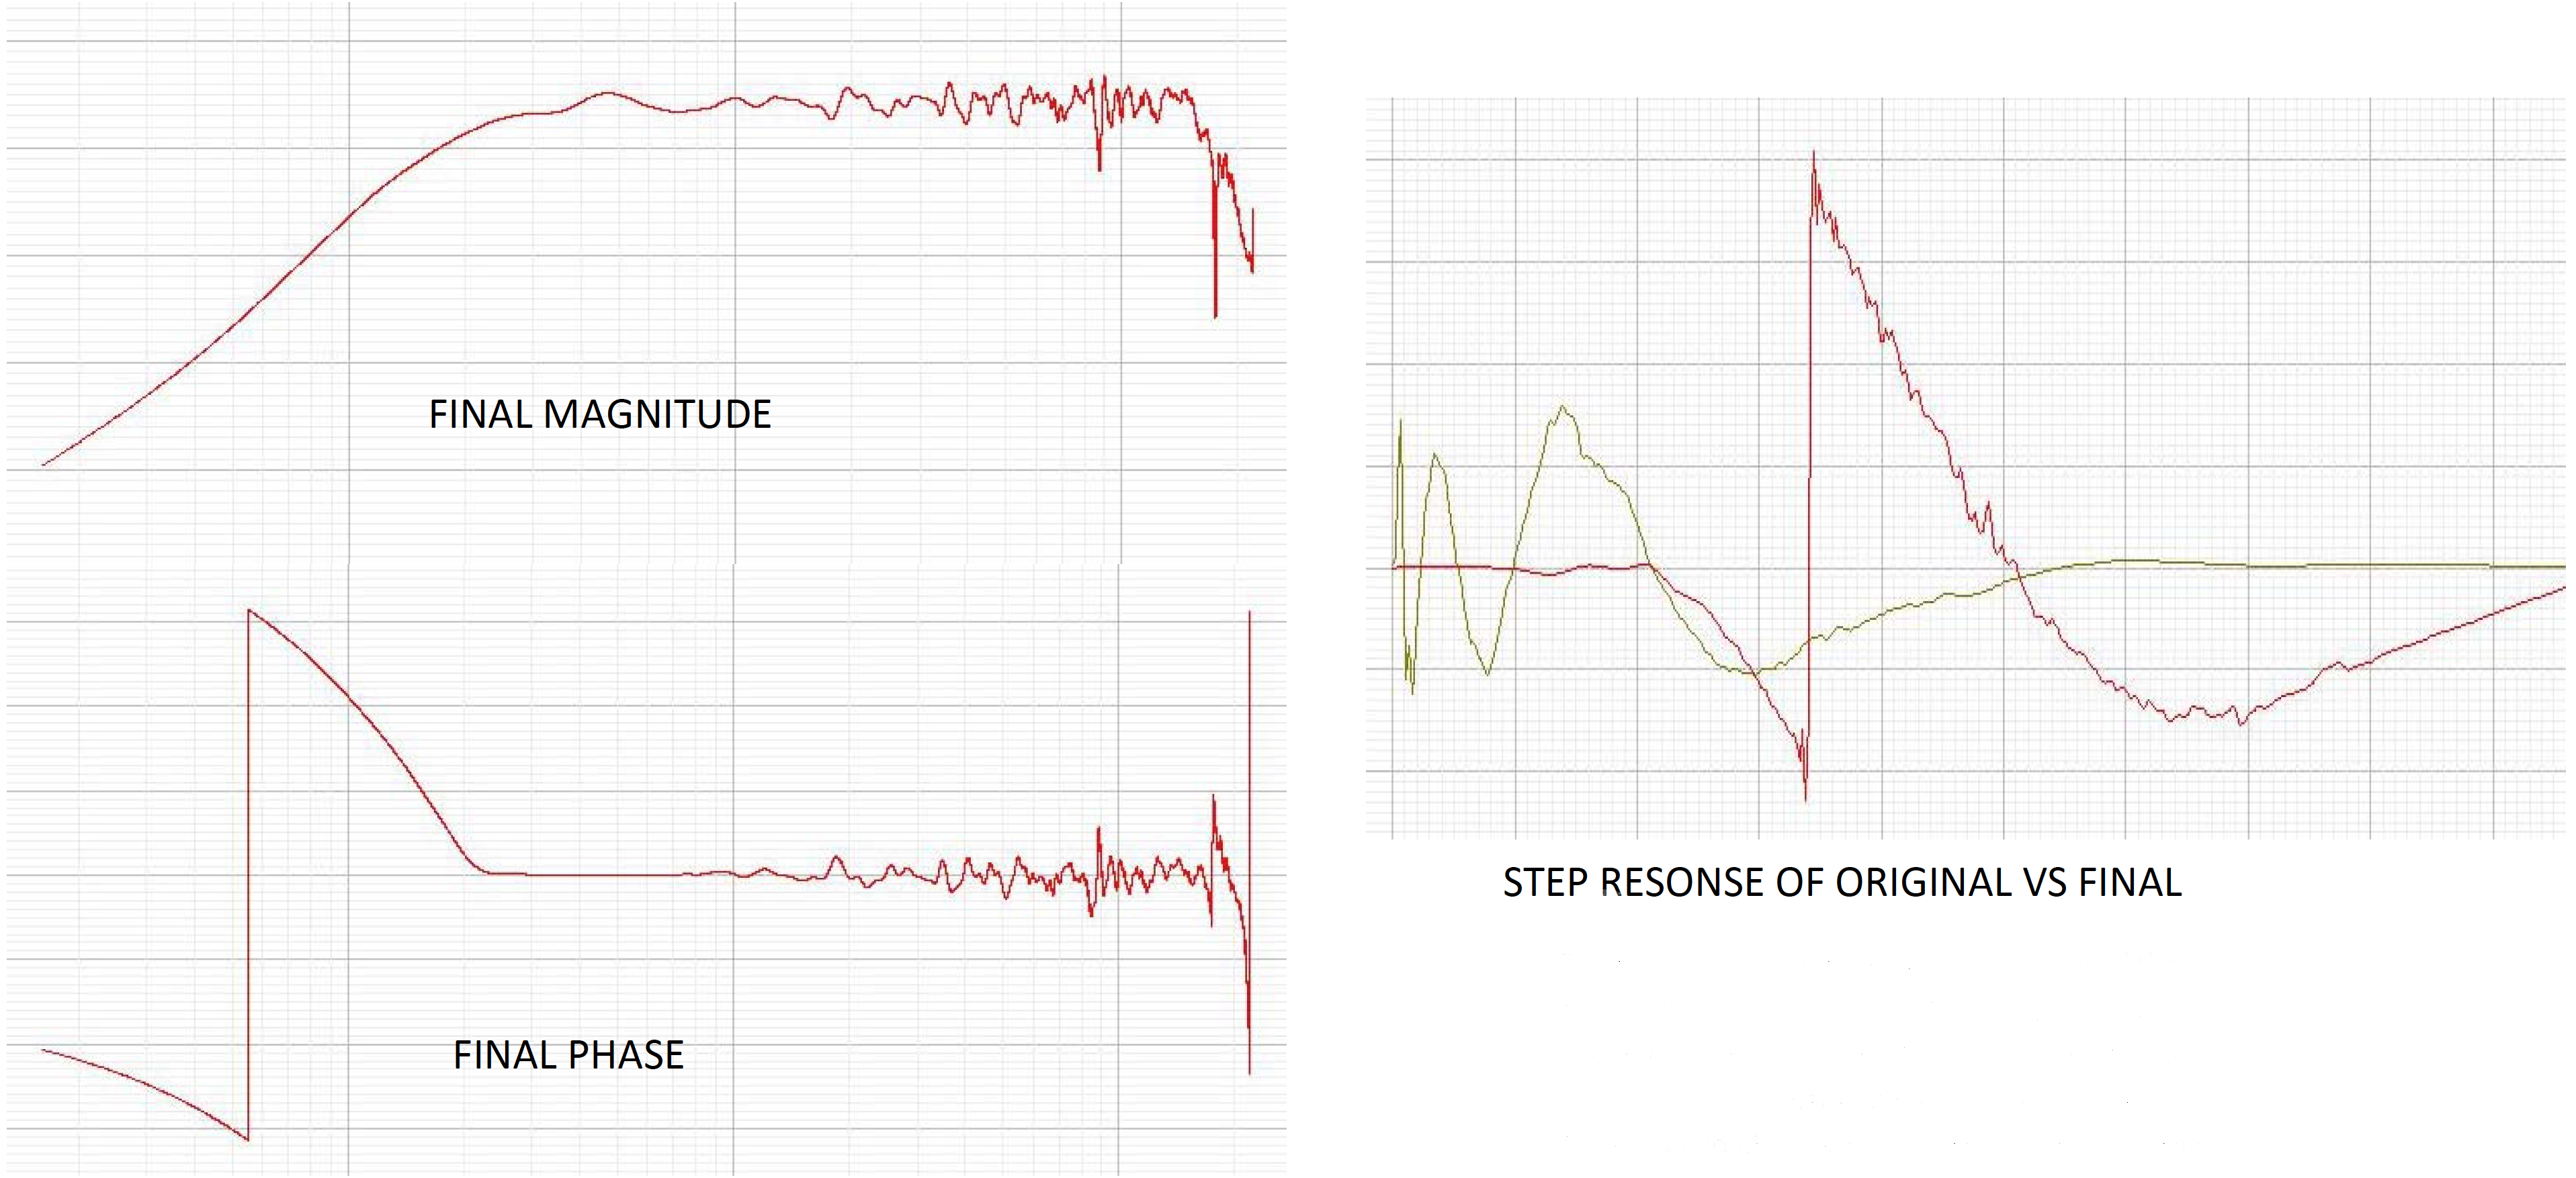 Plot showing the step response, before and after.